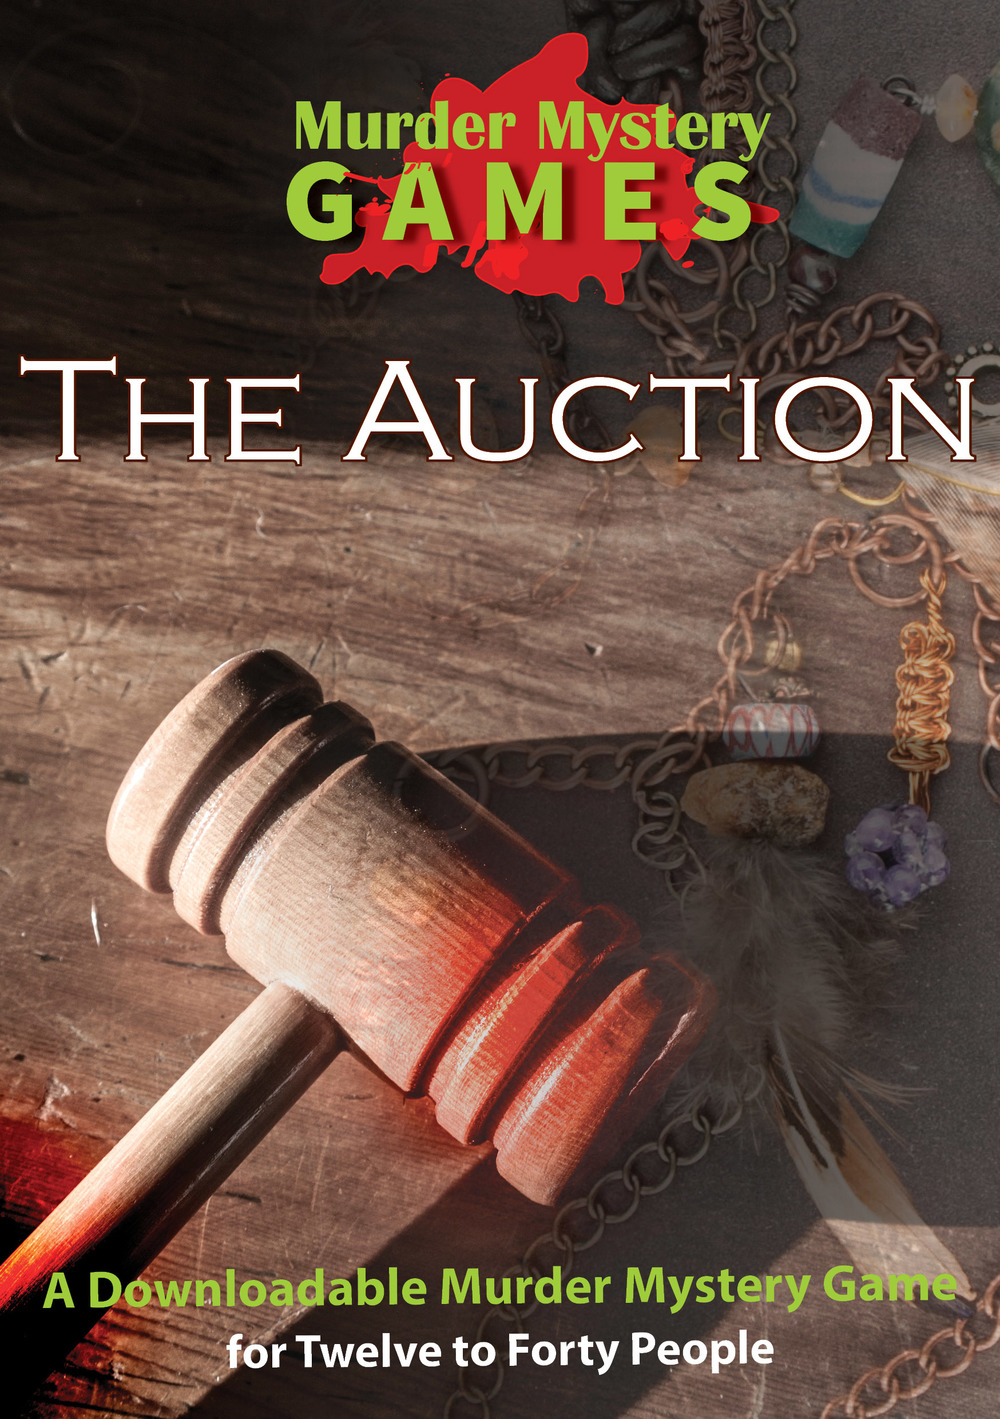 The Auction - A Downloadable Murder Mystery Game Featuring A Live Auction